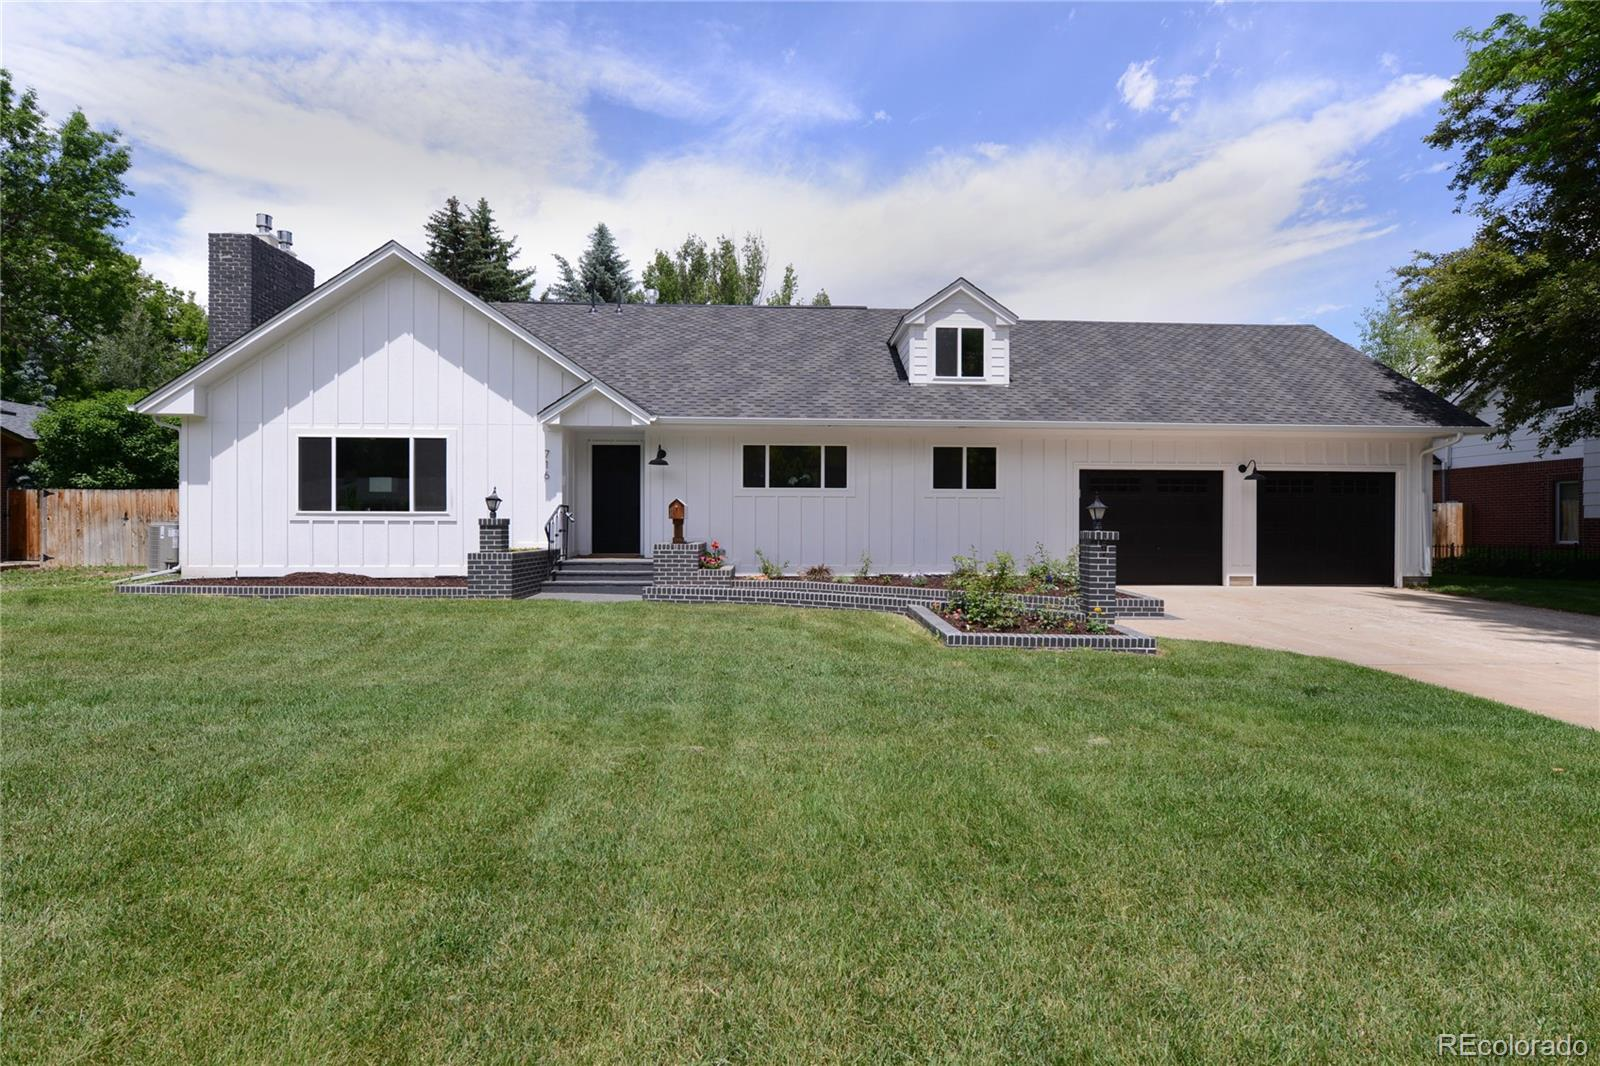 716 Garfield Street, Fort Collins, CO 80524 - Fort Collins, CO real estate listing